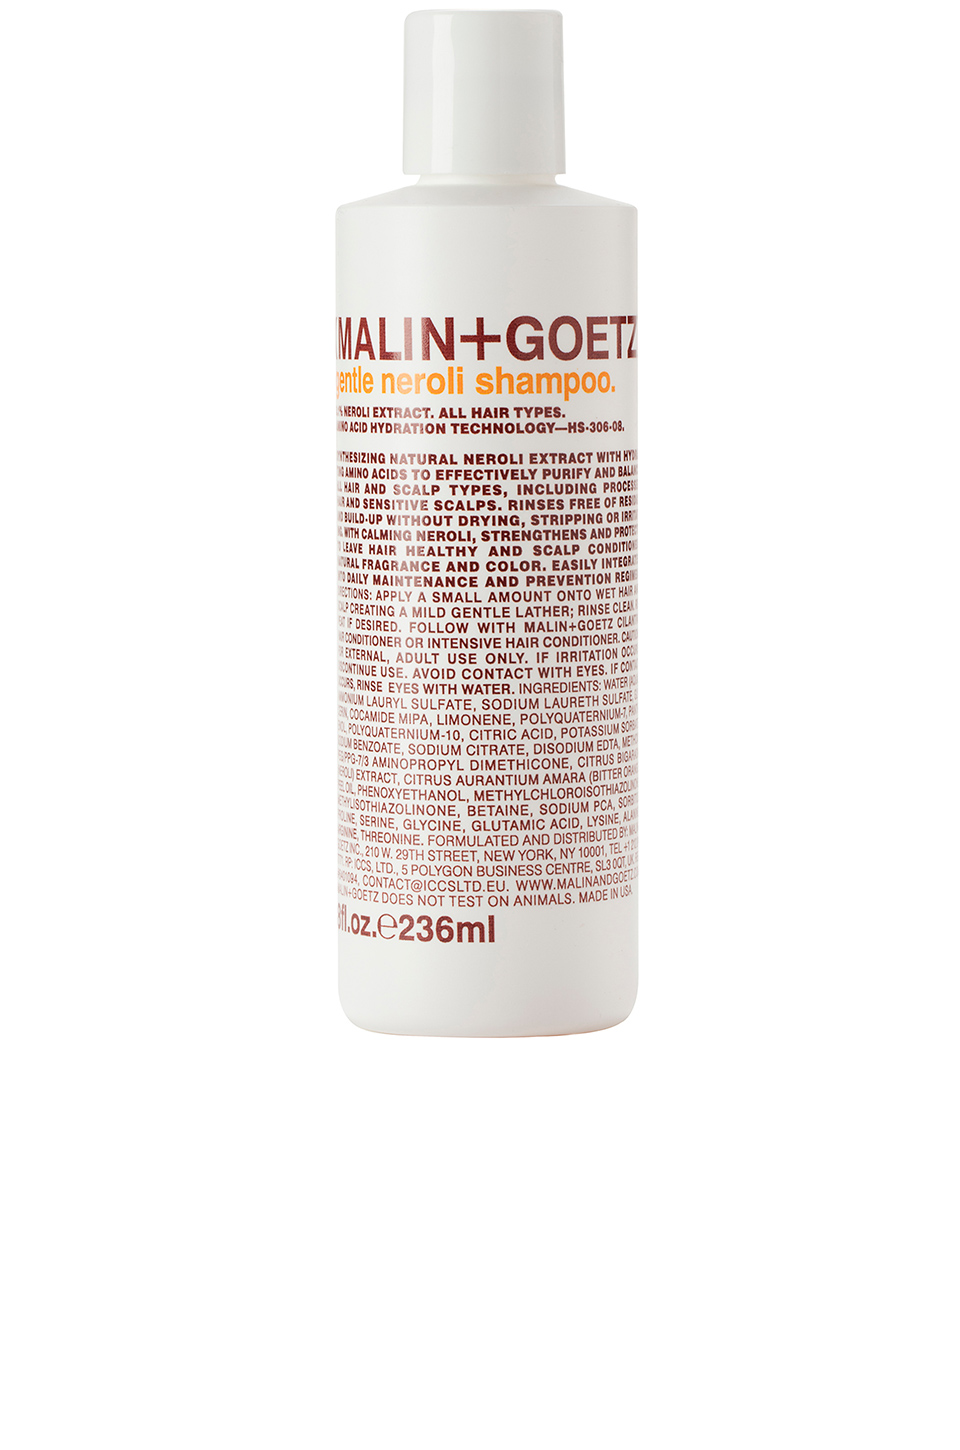 MALIN+GOETZ Gentle Neroli Shampoo in